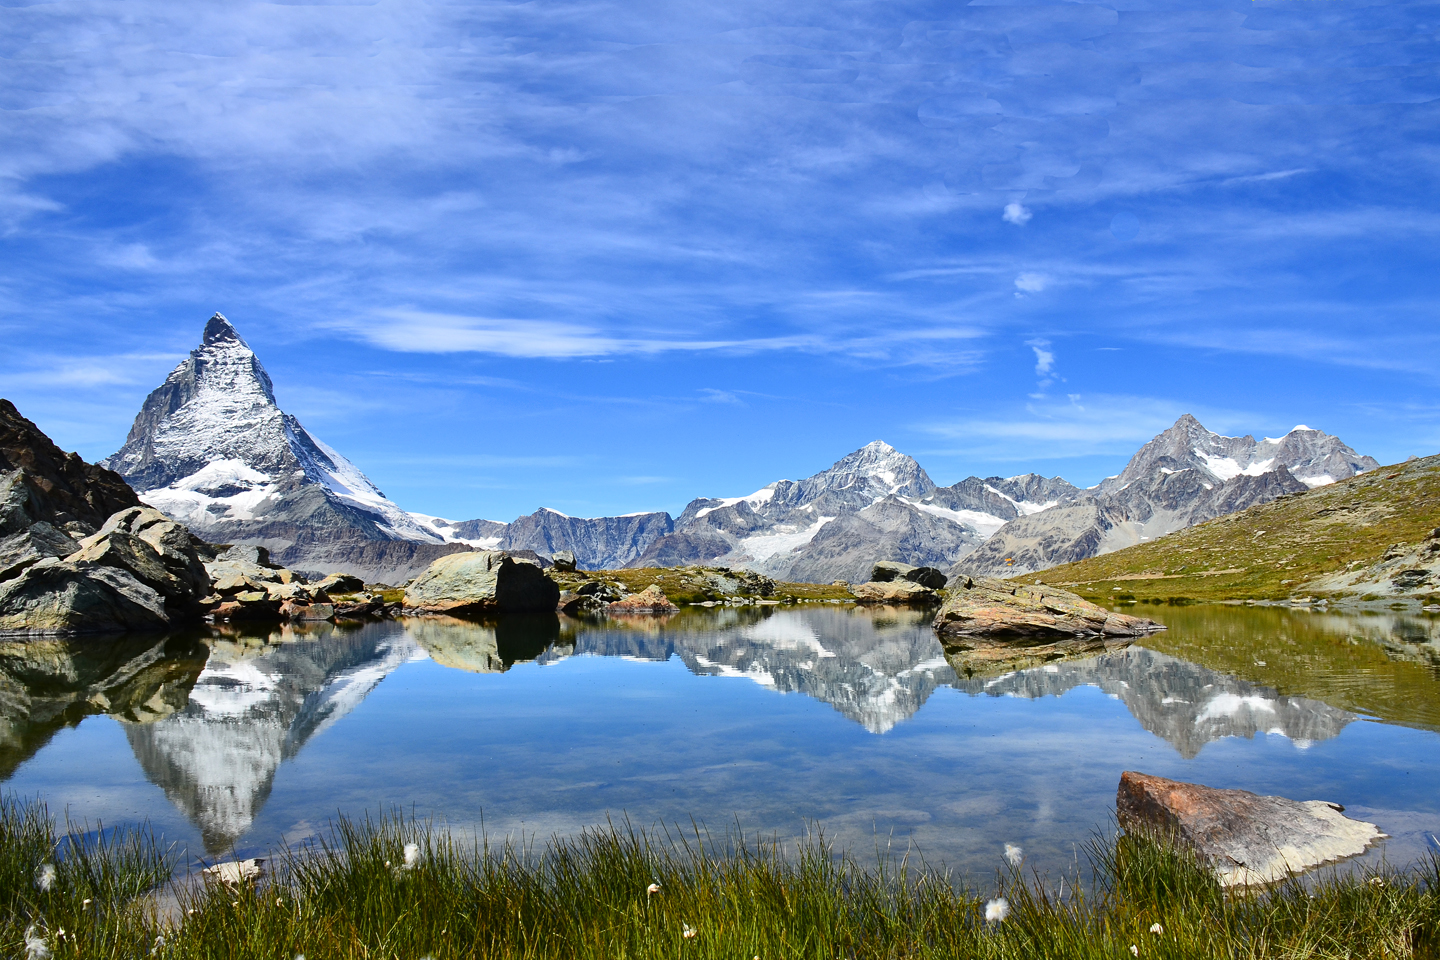 The Matterhorn reflects in the Riffelsee near the Gornergrat